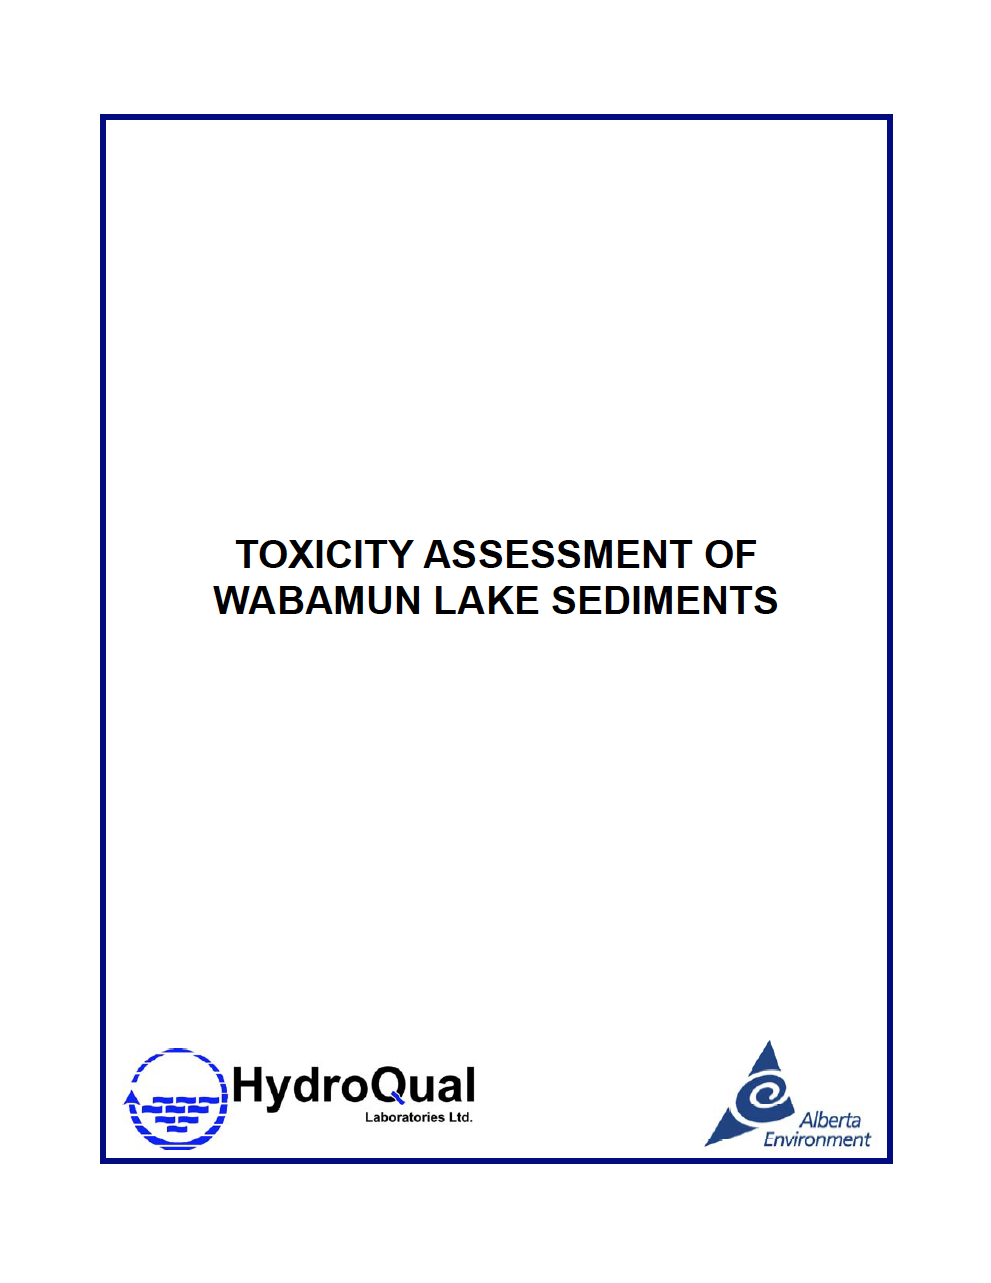 Toxicity Assessment of Wabamun Lake Sediments.png